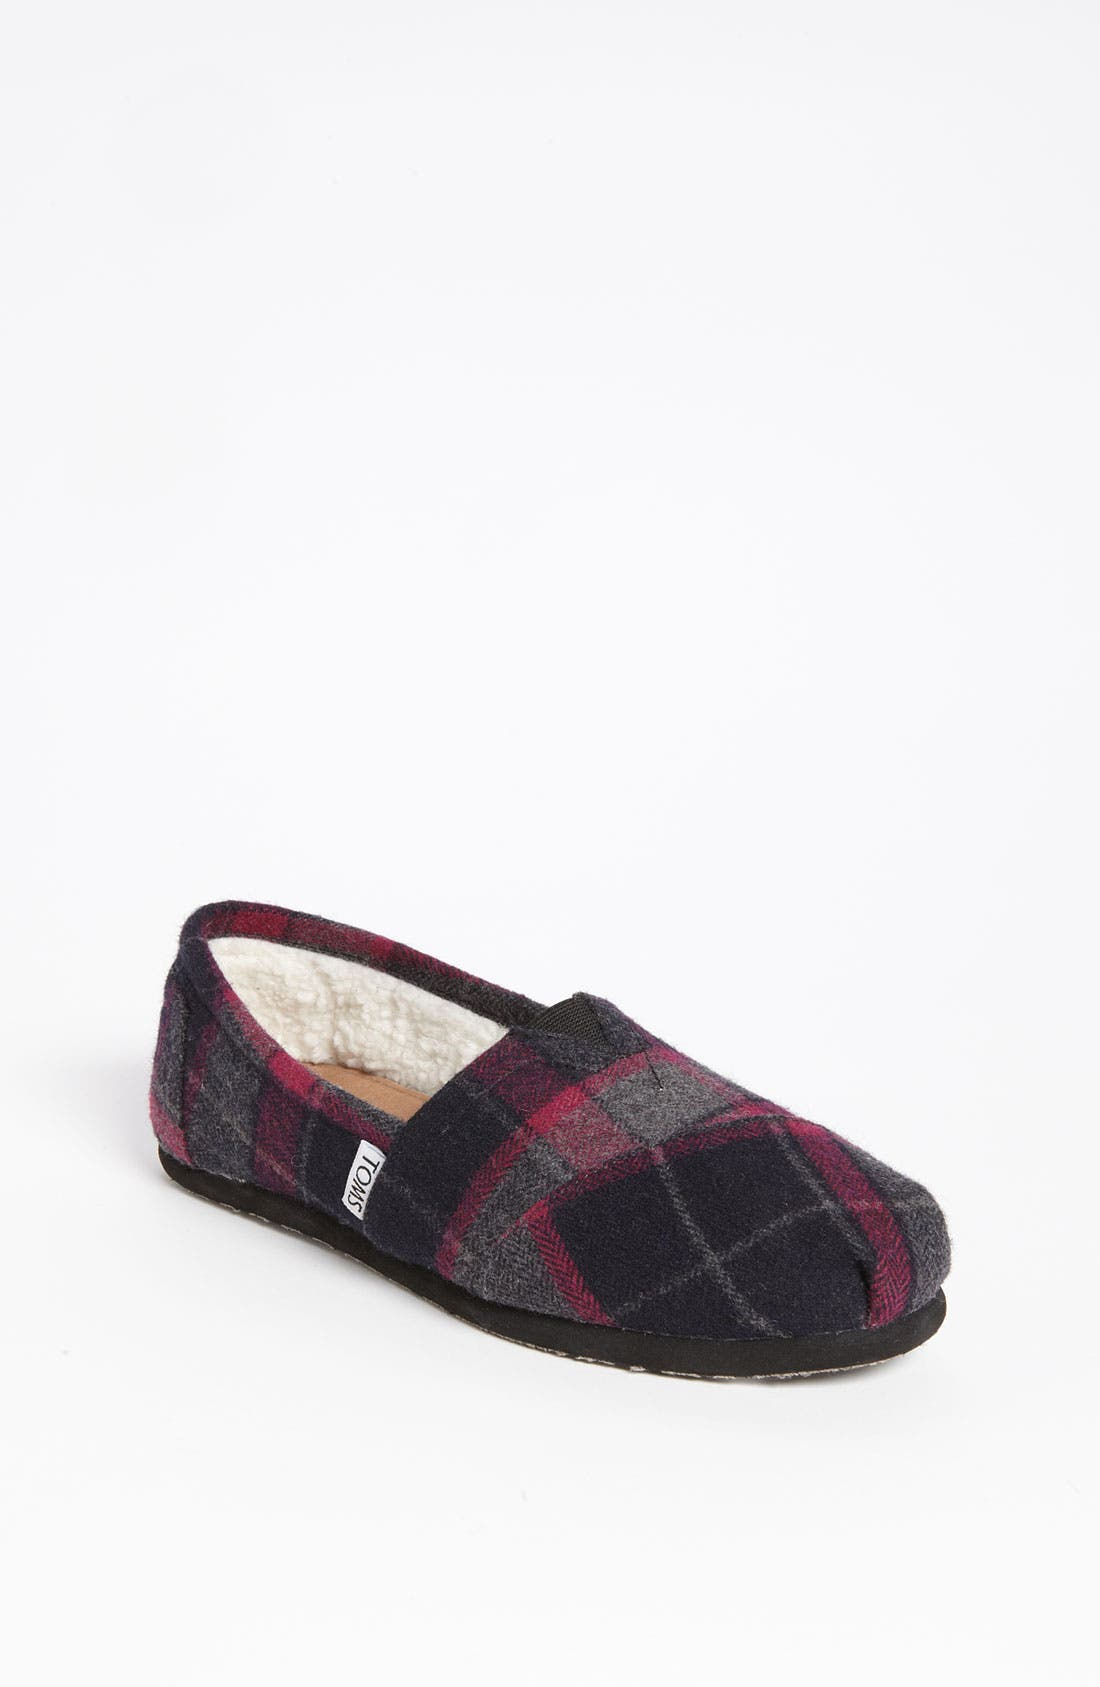 Alternate Image 1 Selected - TOMS 'Classic - Plaid' Wool Slip-On